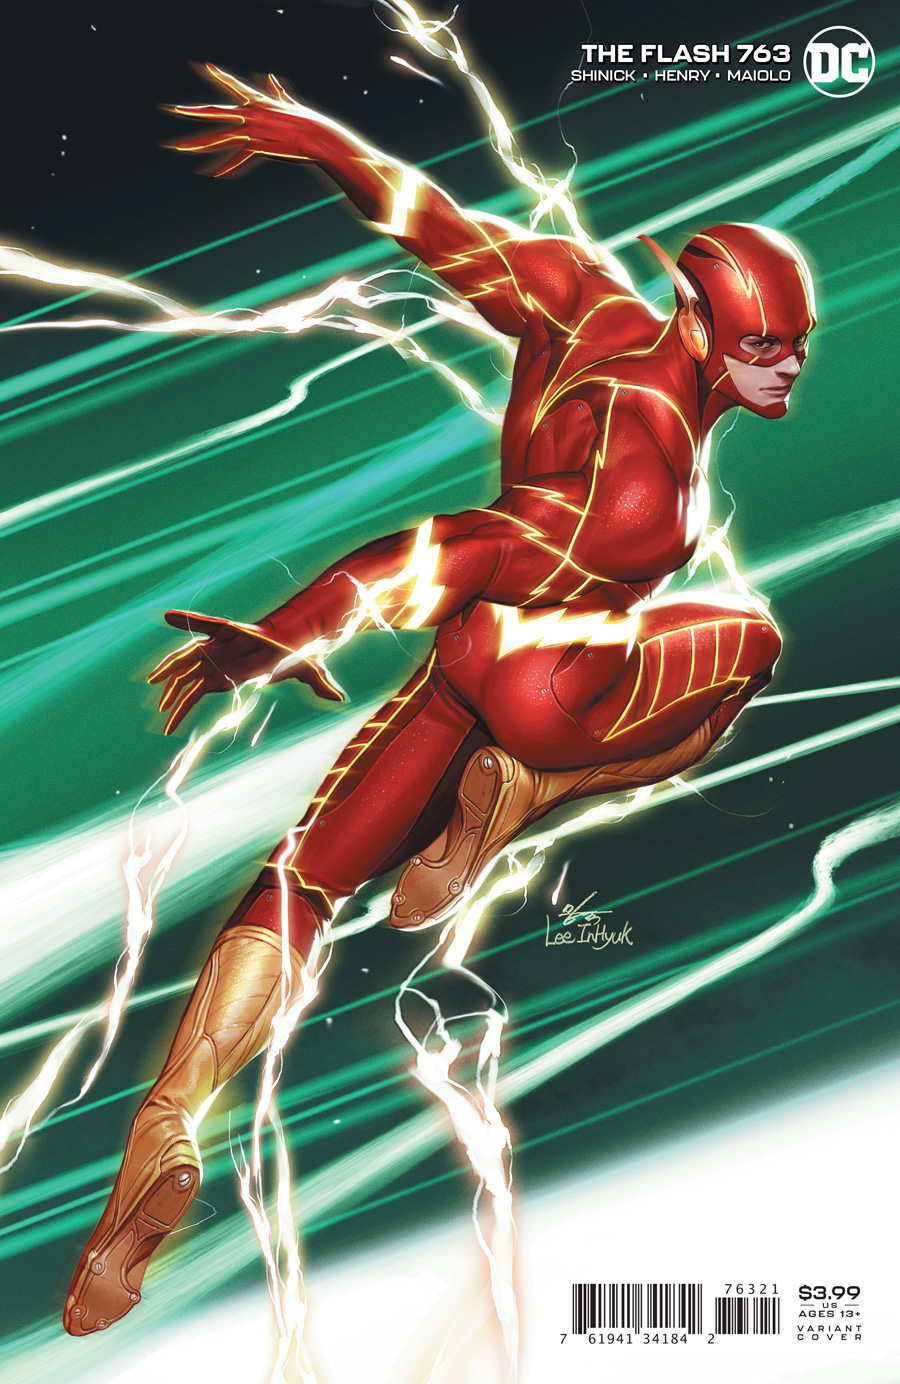 Flash Vol 1 #763 Cover B Inhyuk Lee Variant